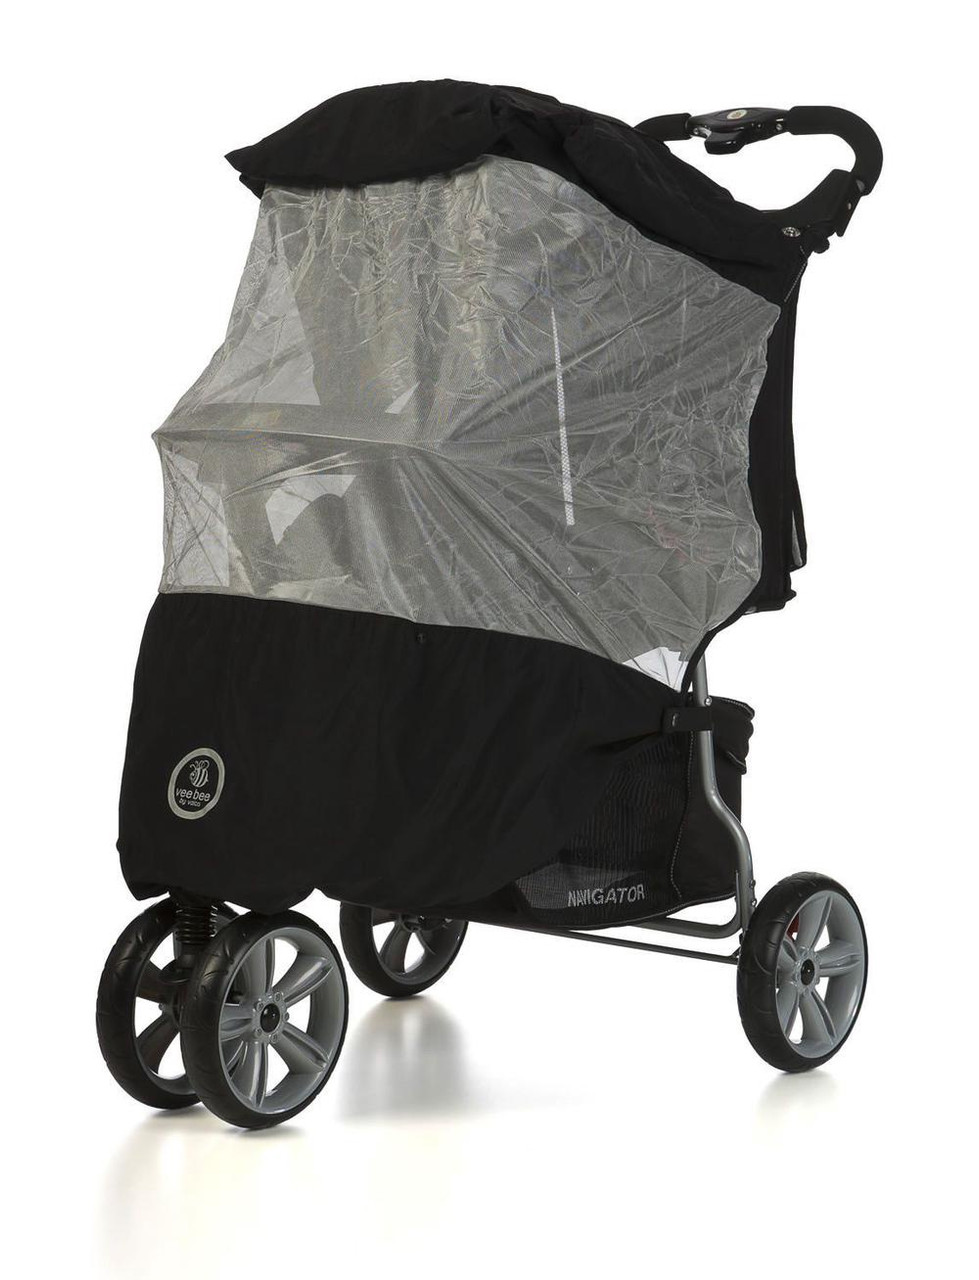 Vee Bee Sunstopper Plus+ sun Mesh for Single Pram at Baby Barn Discounts Lightweight breathable mesh sun cover to fit a 3 & 4 wheel pram.